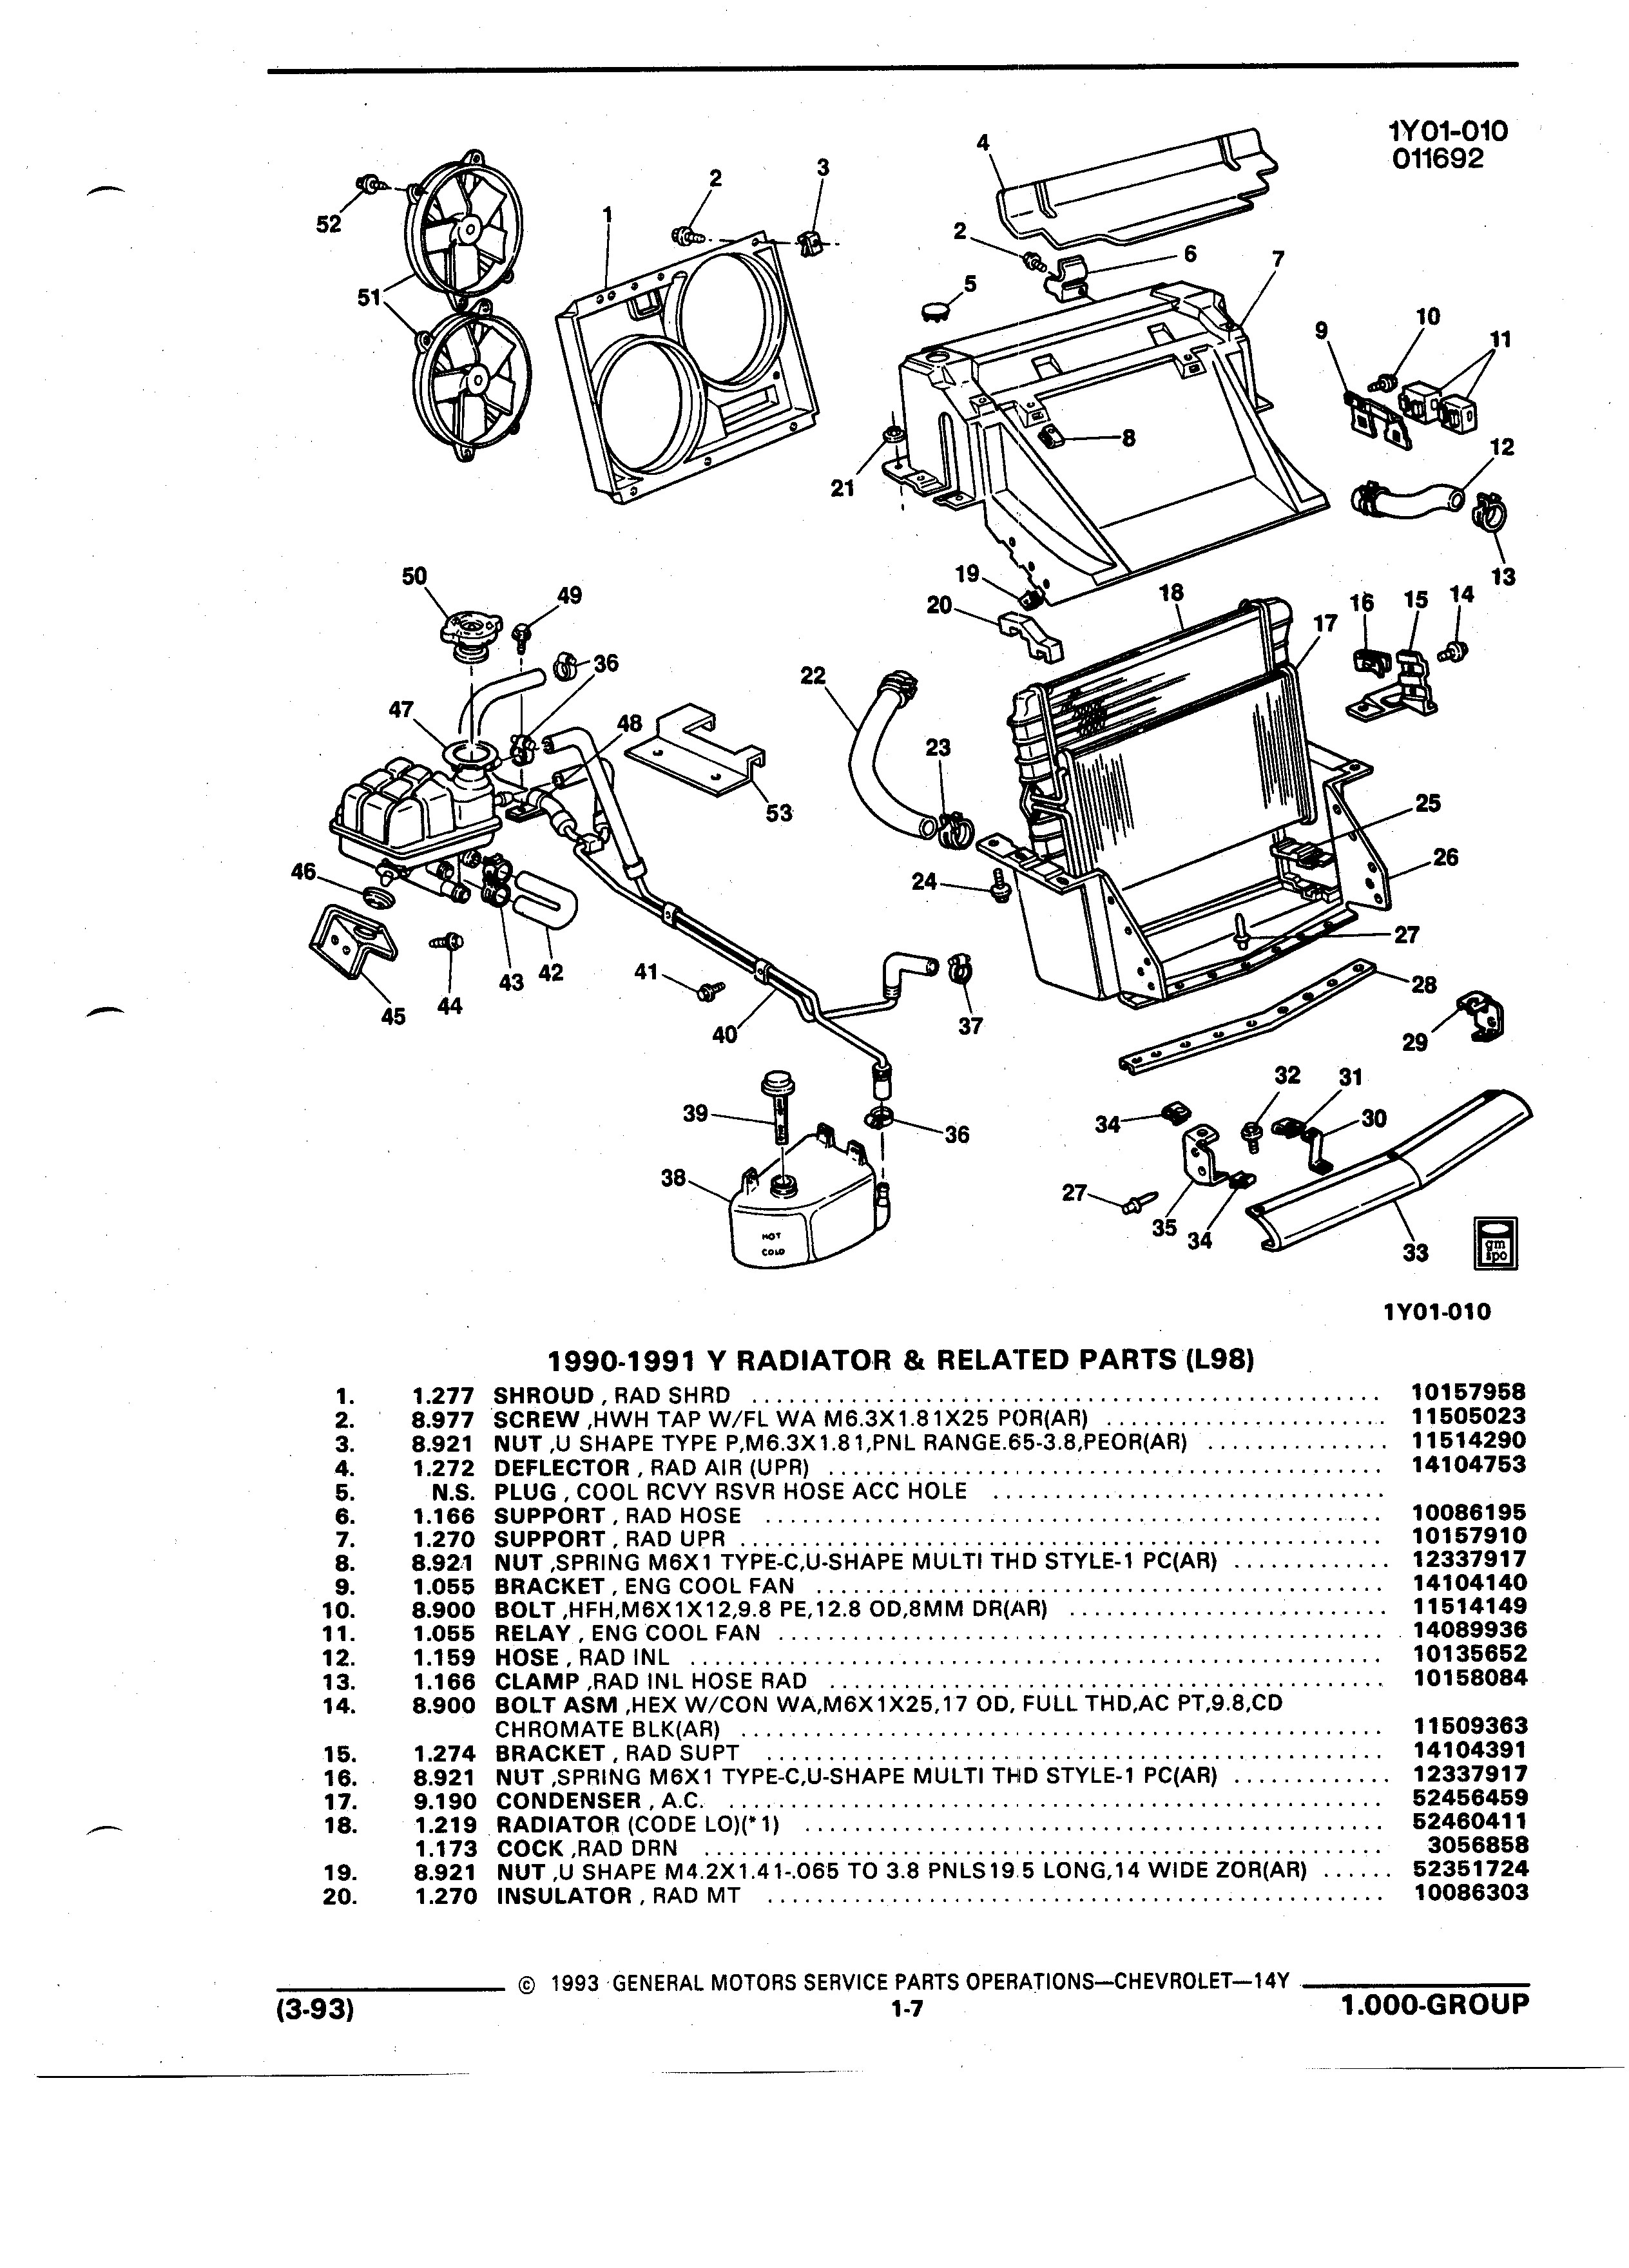 Radiator Parts Diagram Gmpartswiki Parts and Illustration Catalog 14y March 1993 Of Radiator Parts Diagram